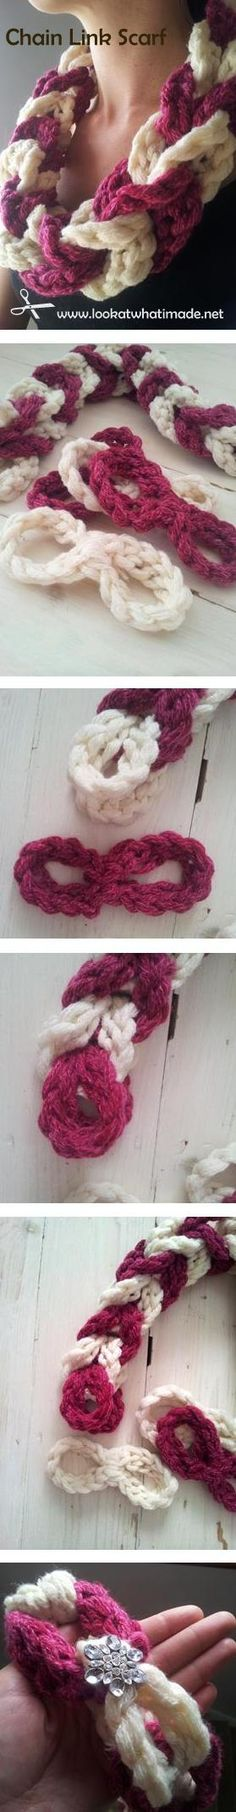 Crochet Chain Link Scarf Crochet Chain Link Scarf Pattern; this looks so easy [: Now I know what to do with all my scrap yarn